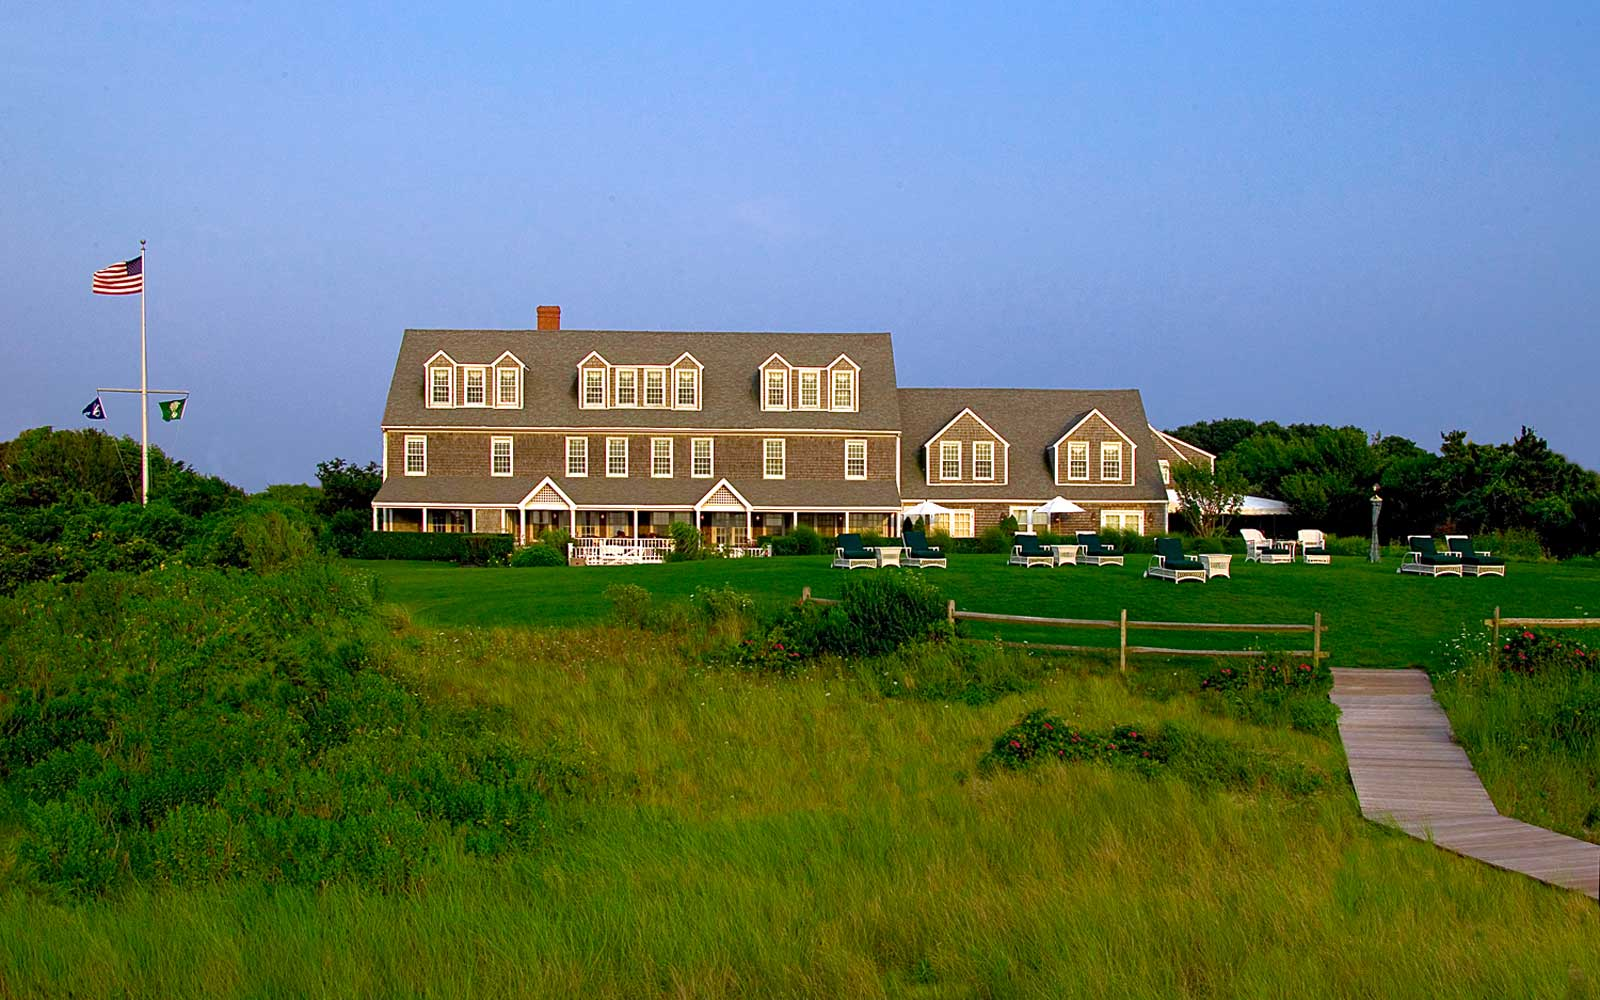 Exterior of Wauwinet Inn, Nantucket